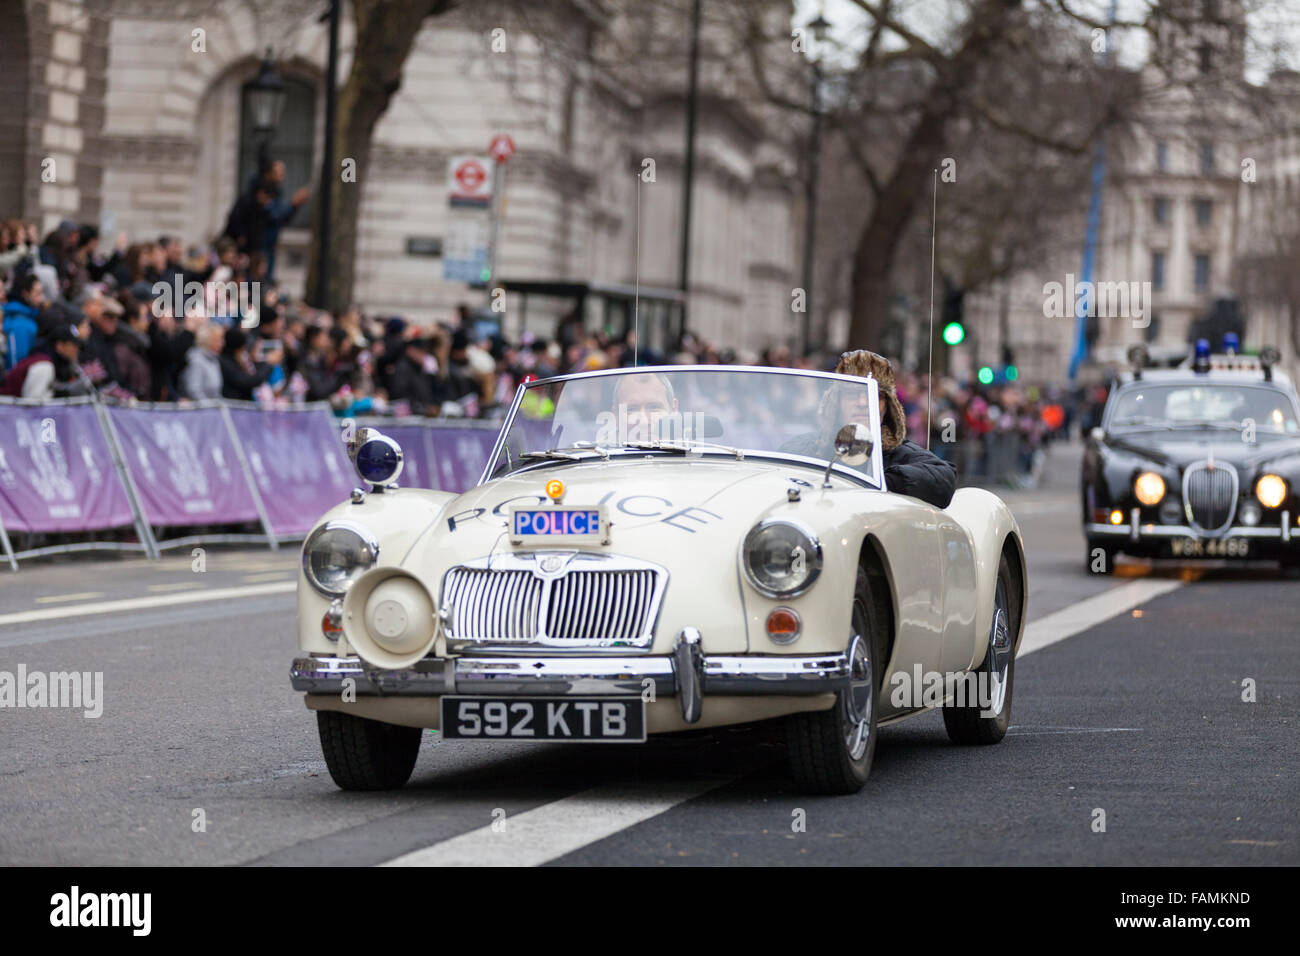 London Uk January Classic Cars From Police Car Uk